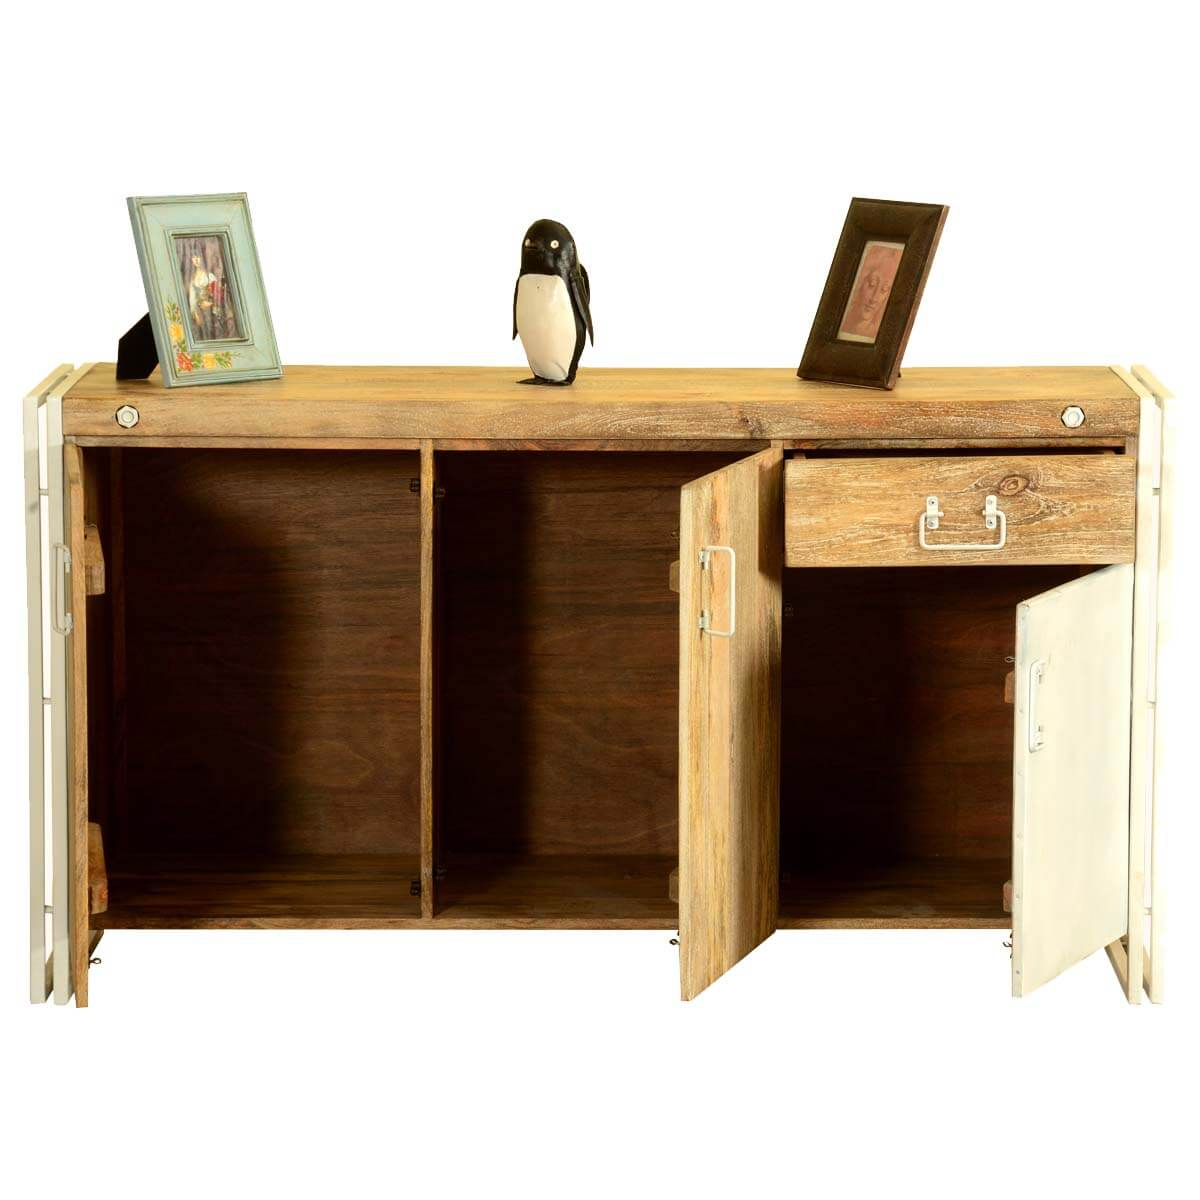 Wooden Studio Furniture ~ Simply industrial mango wood iron pc studio furniture suite